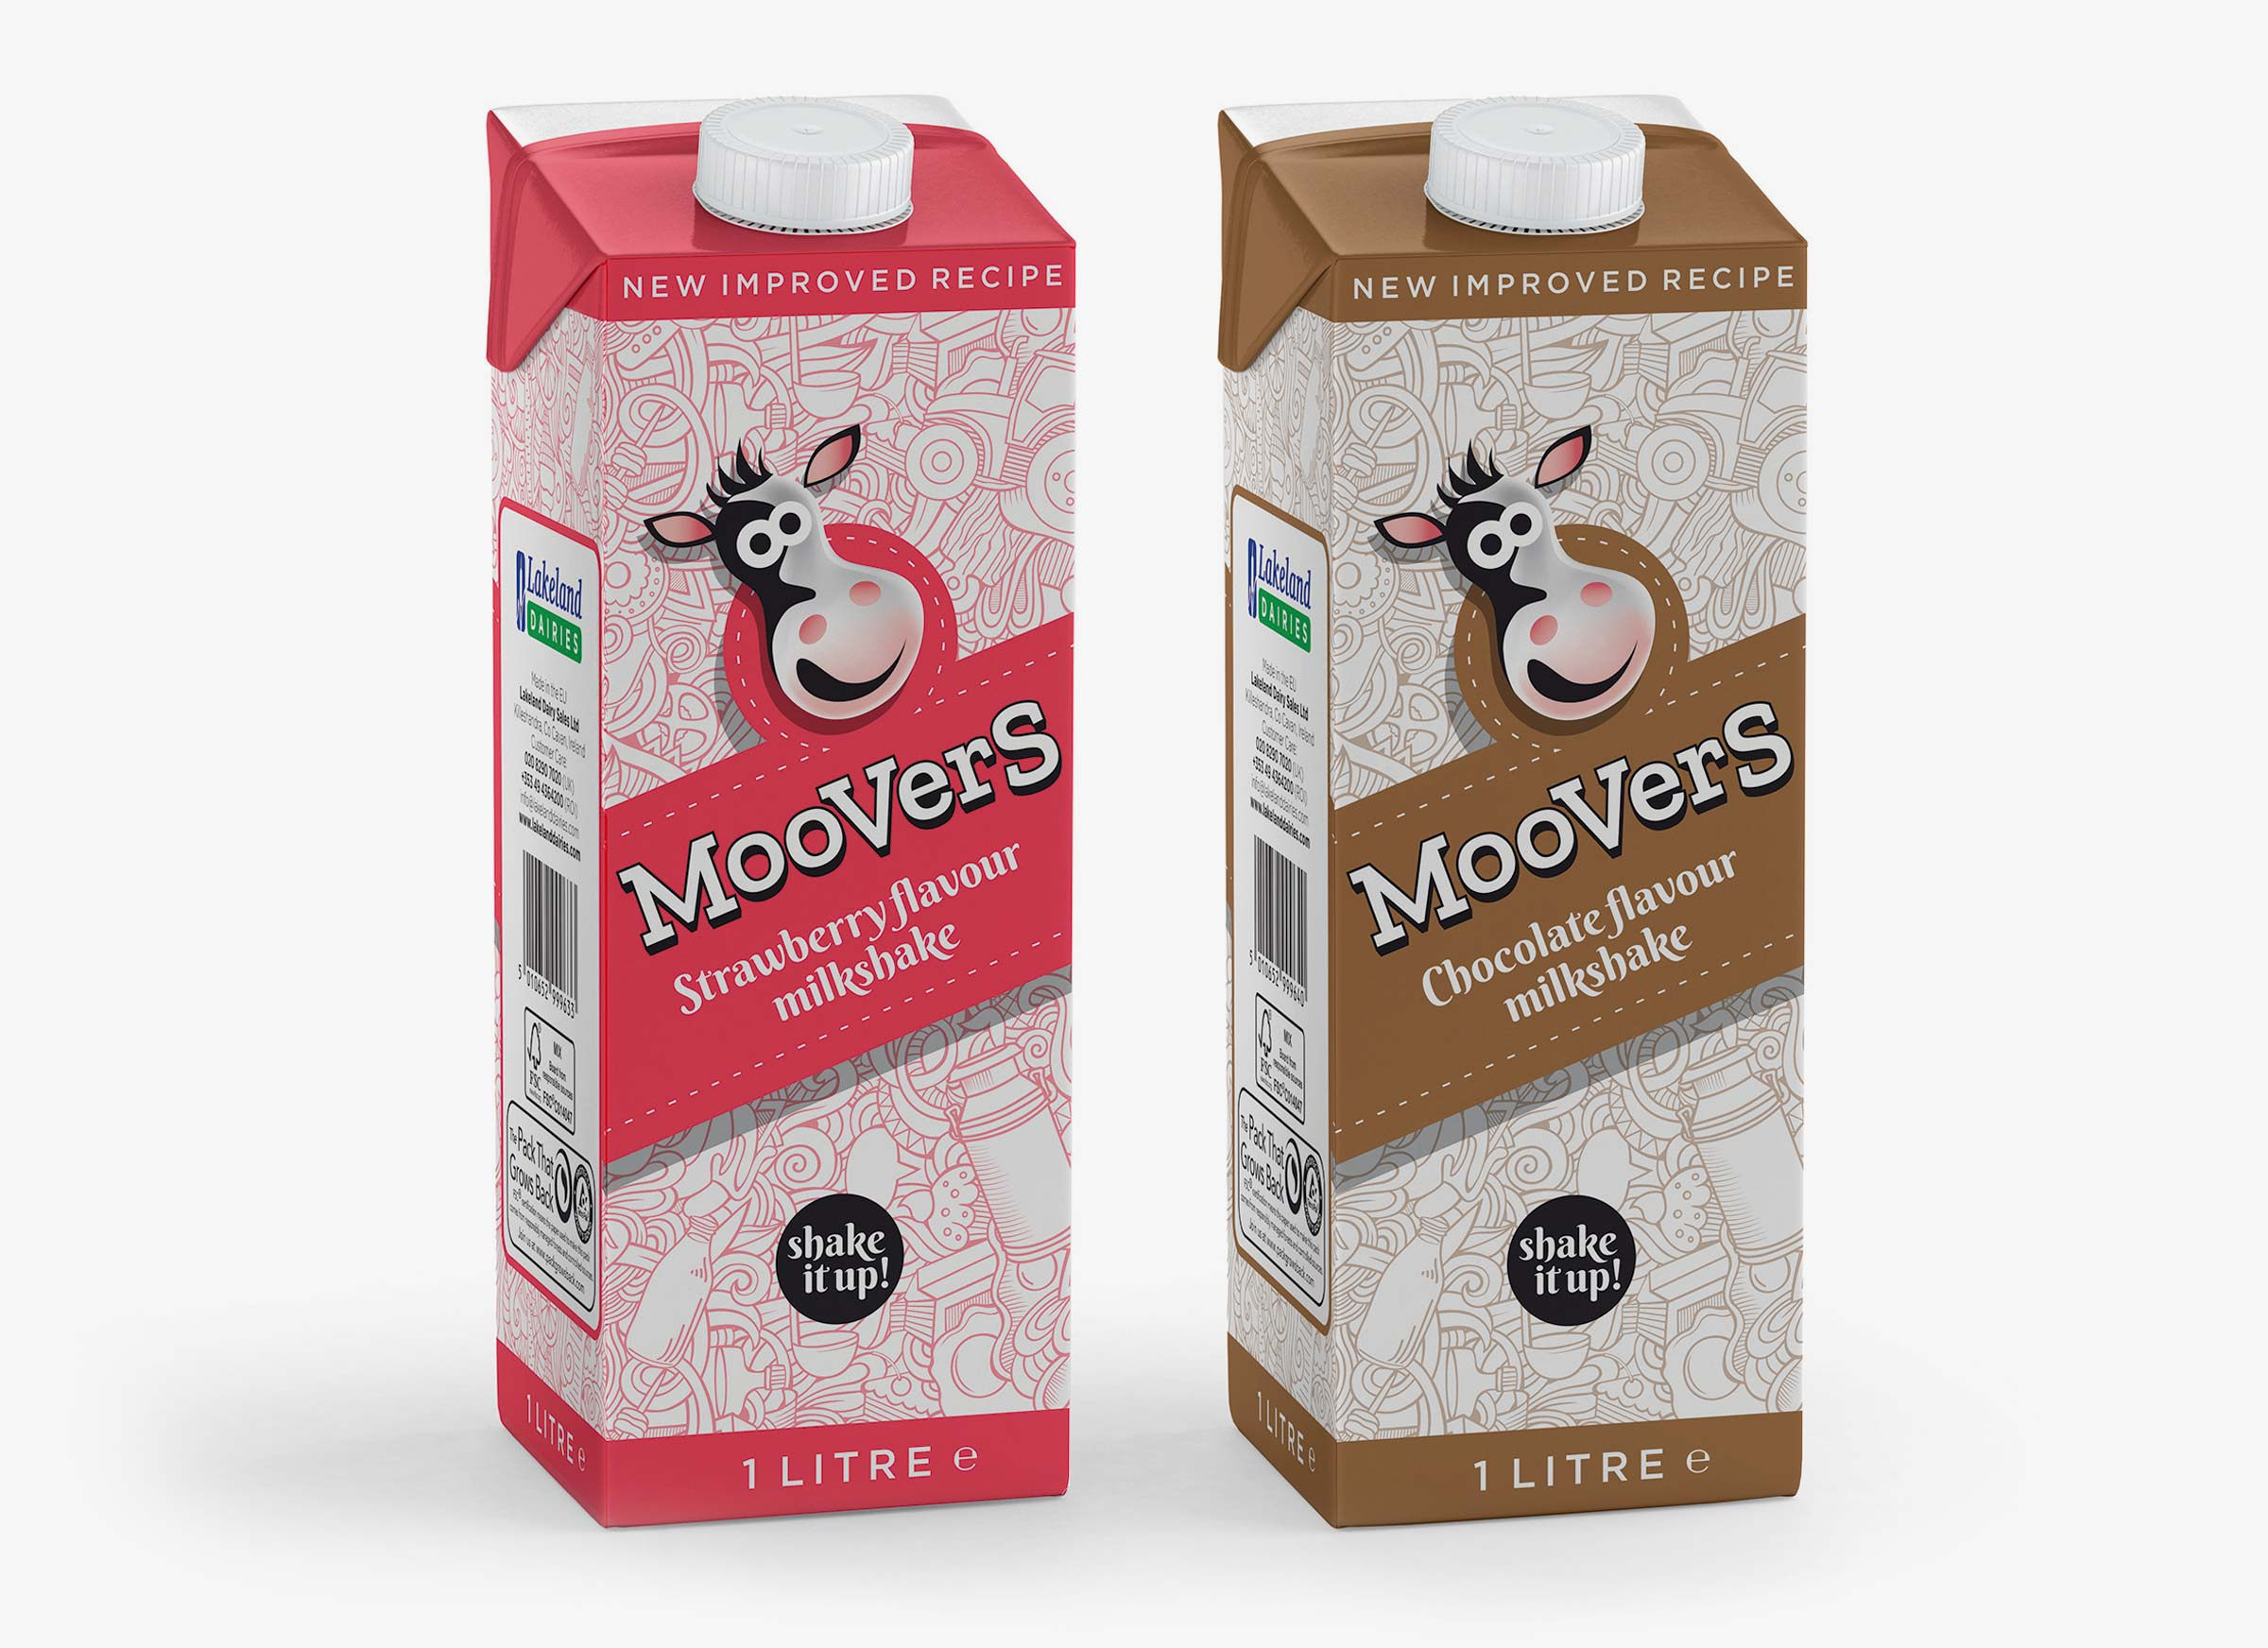 Moovers 1 Litre packs